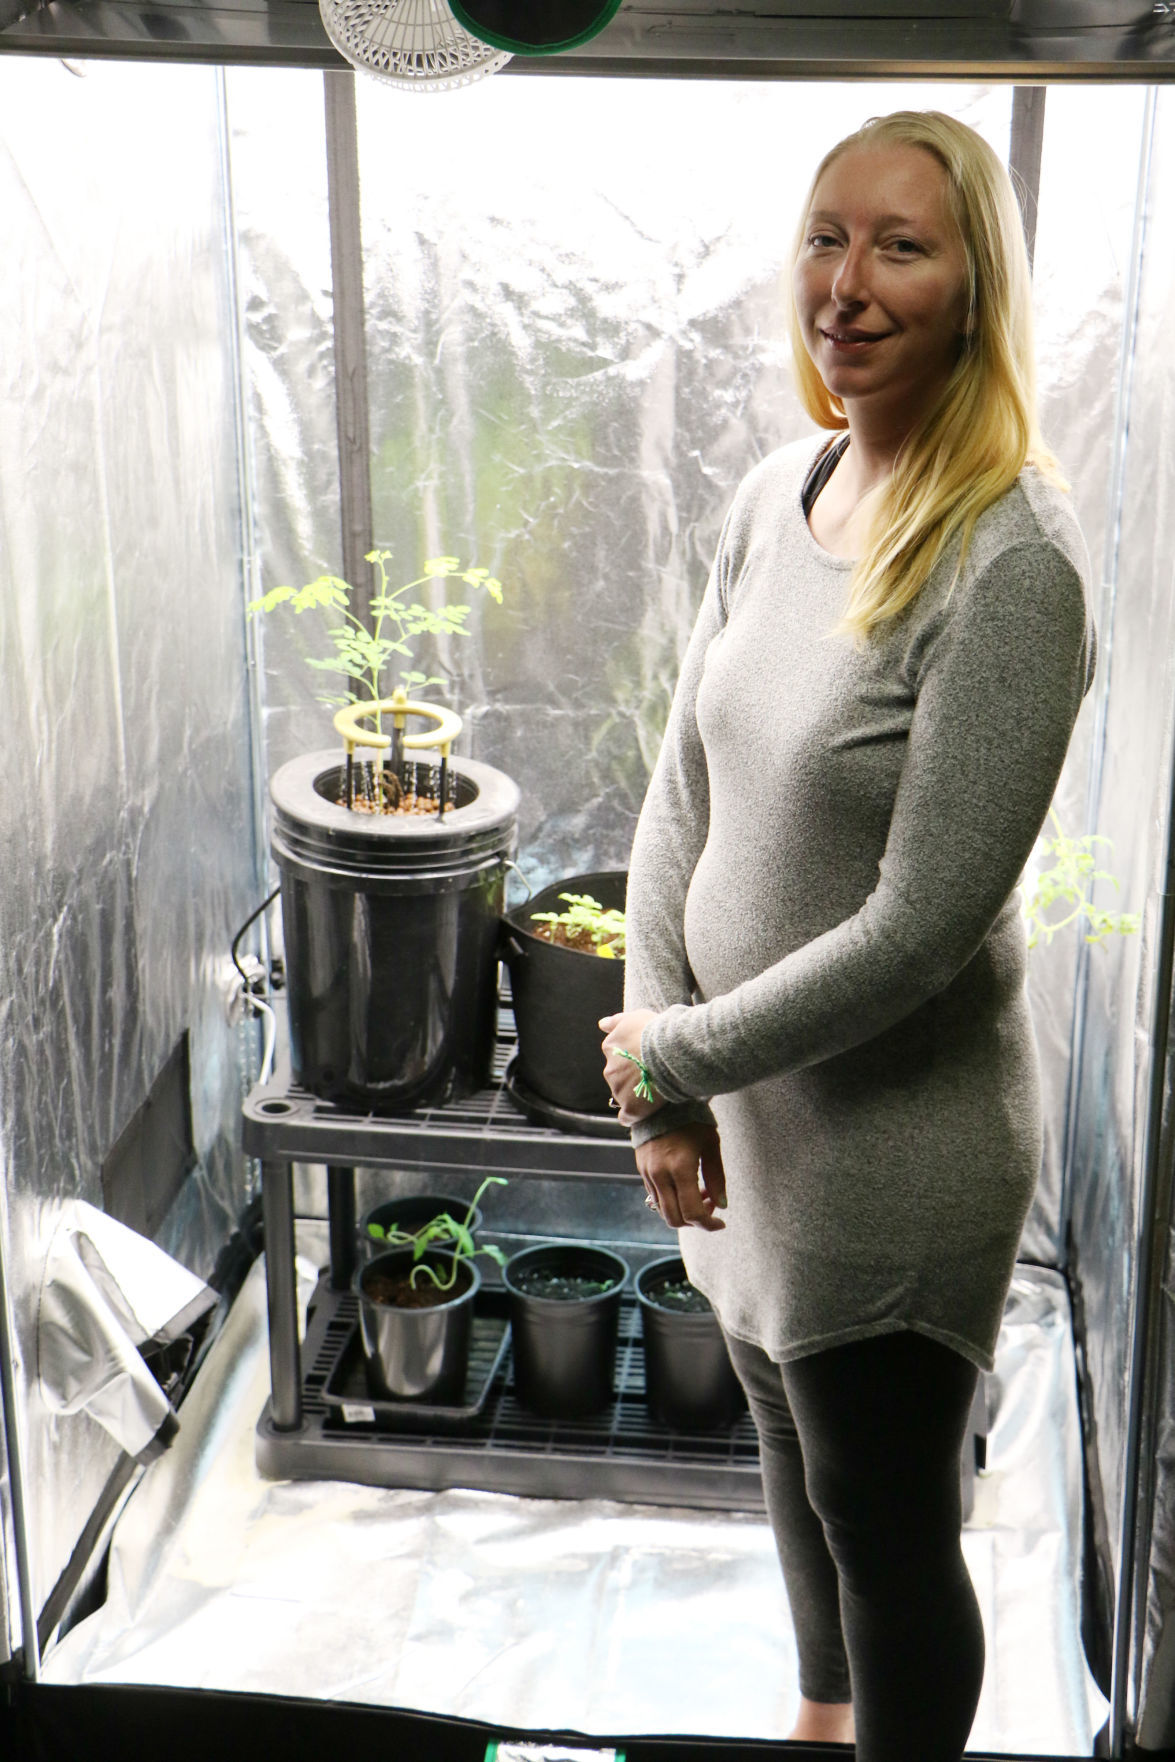 A Growing Business: Pot-growing classes offered at indoor gardening